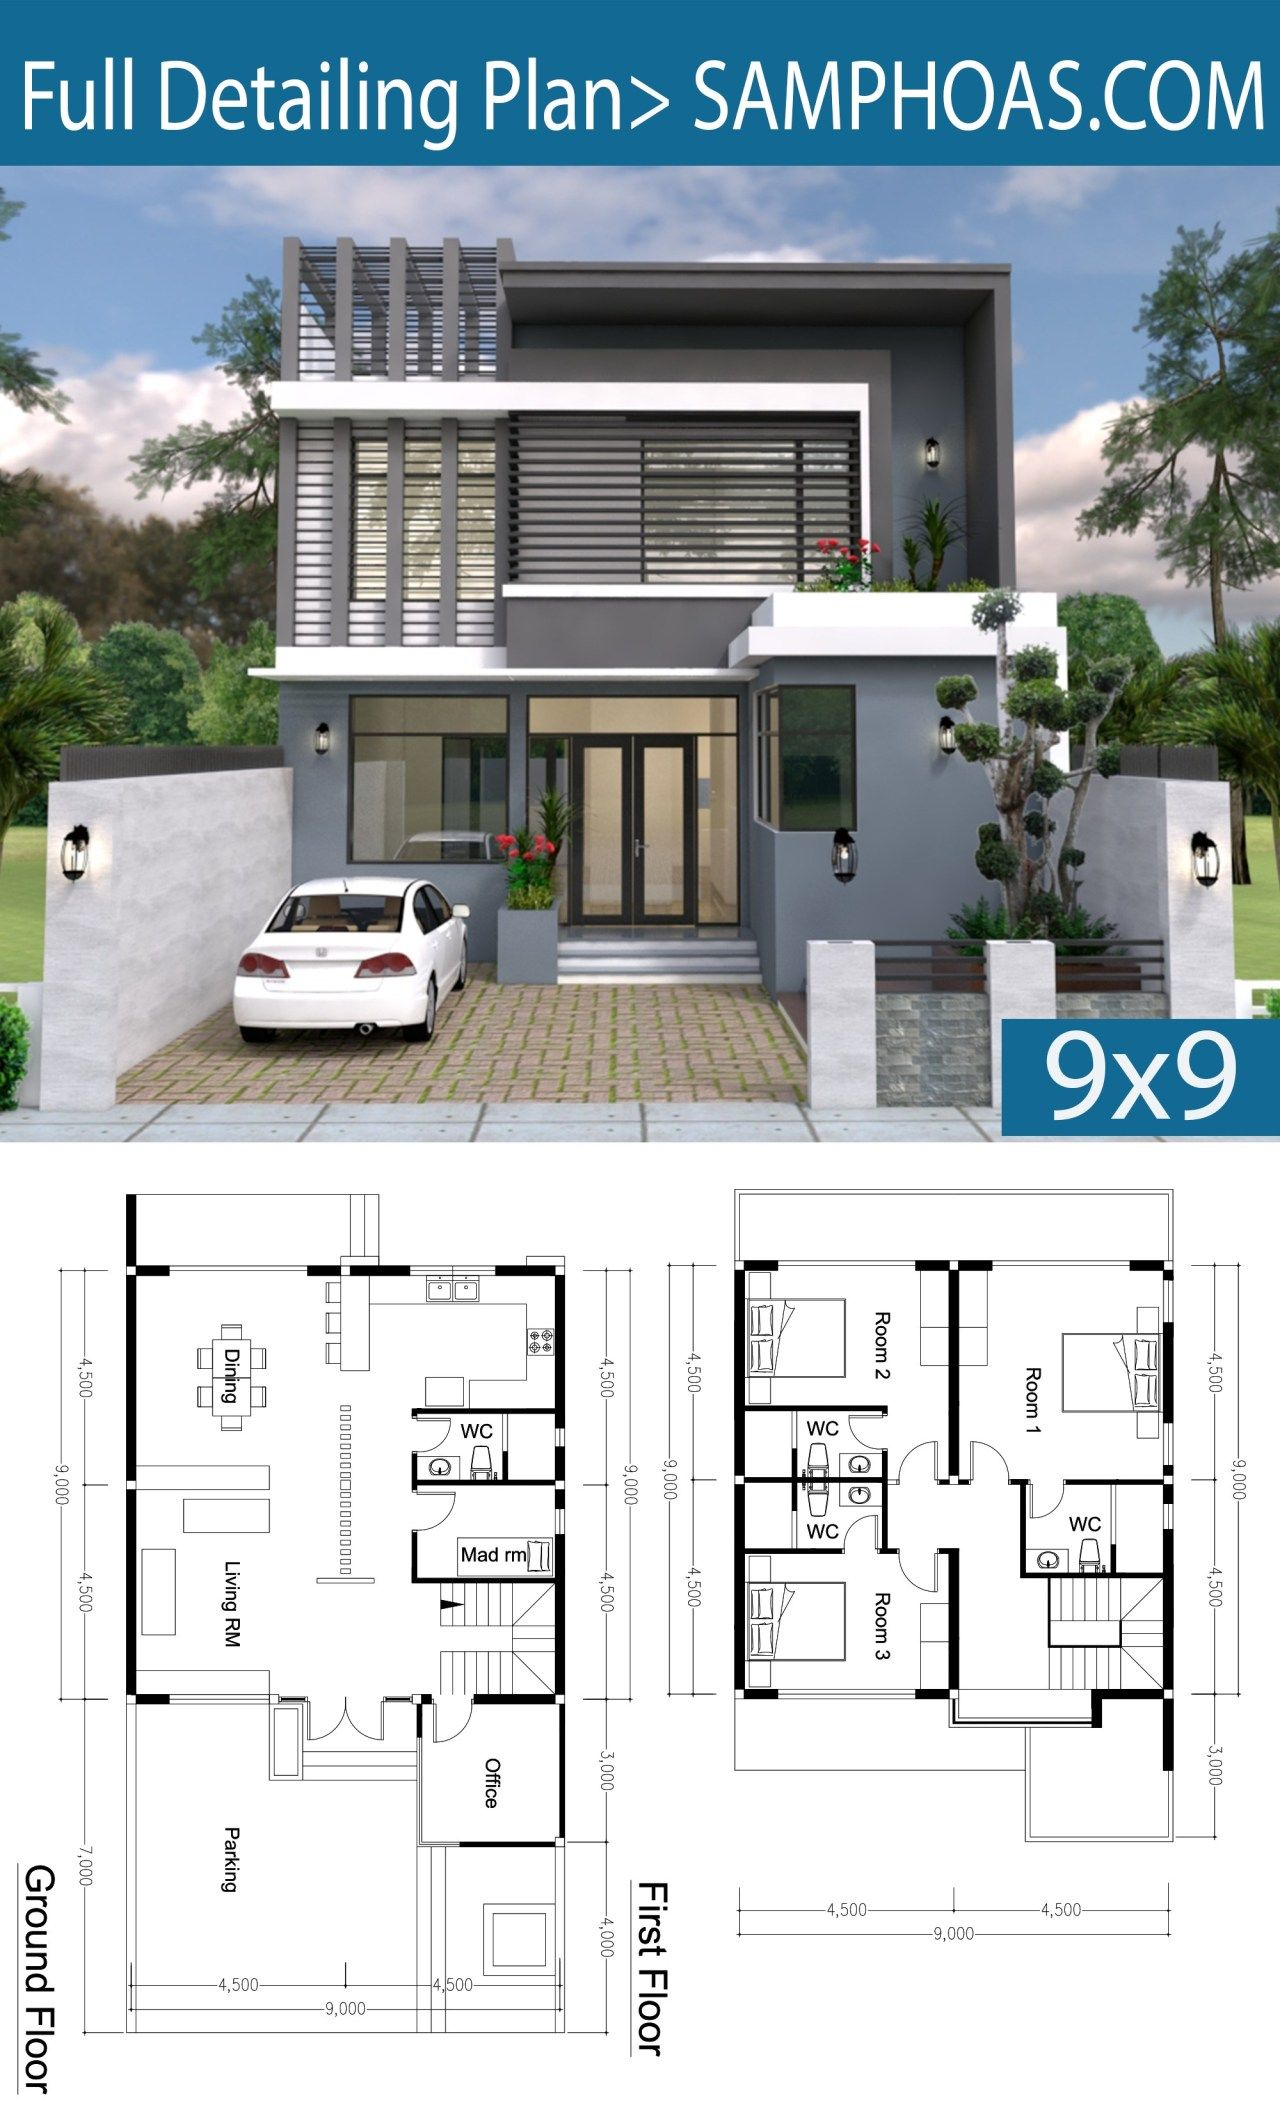 3 Bedroom Modern Home Plan 9x9m Samphoas Plan Architectural House Plans Modern House Floor Plans Modern House Plans